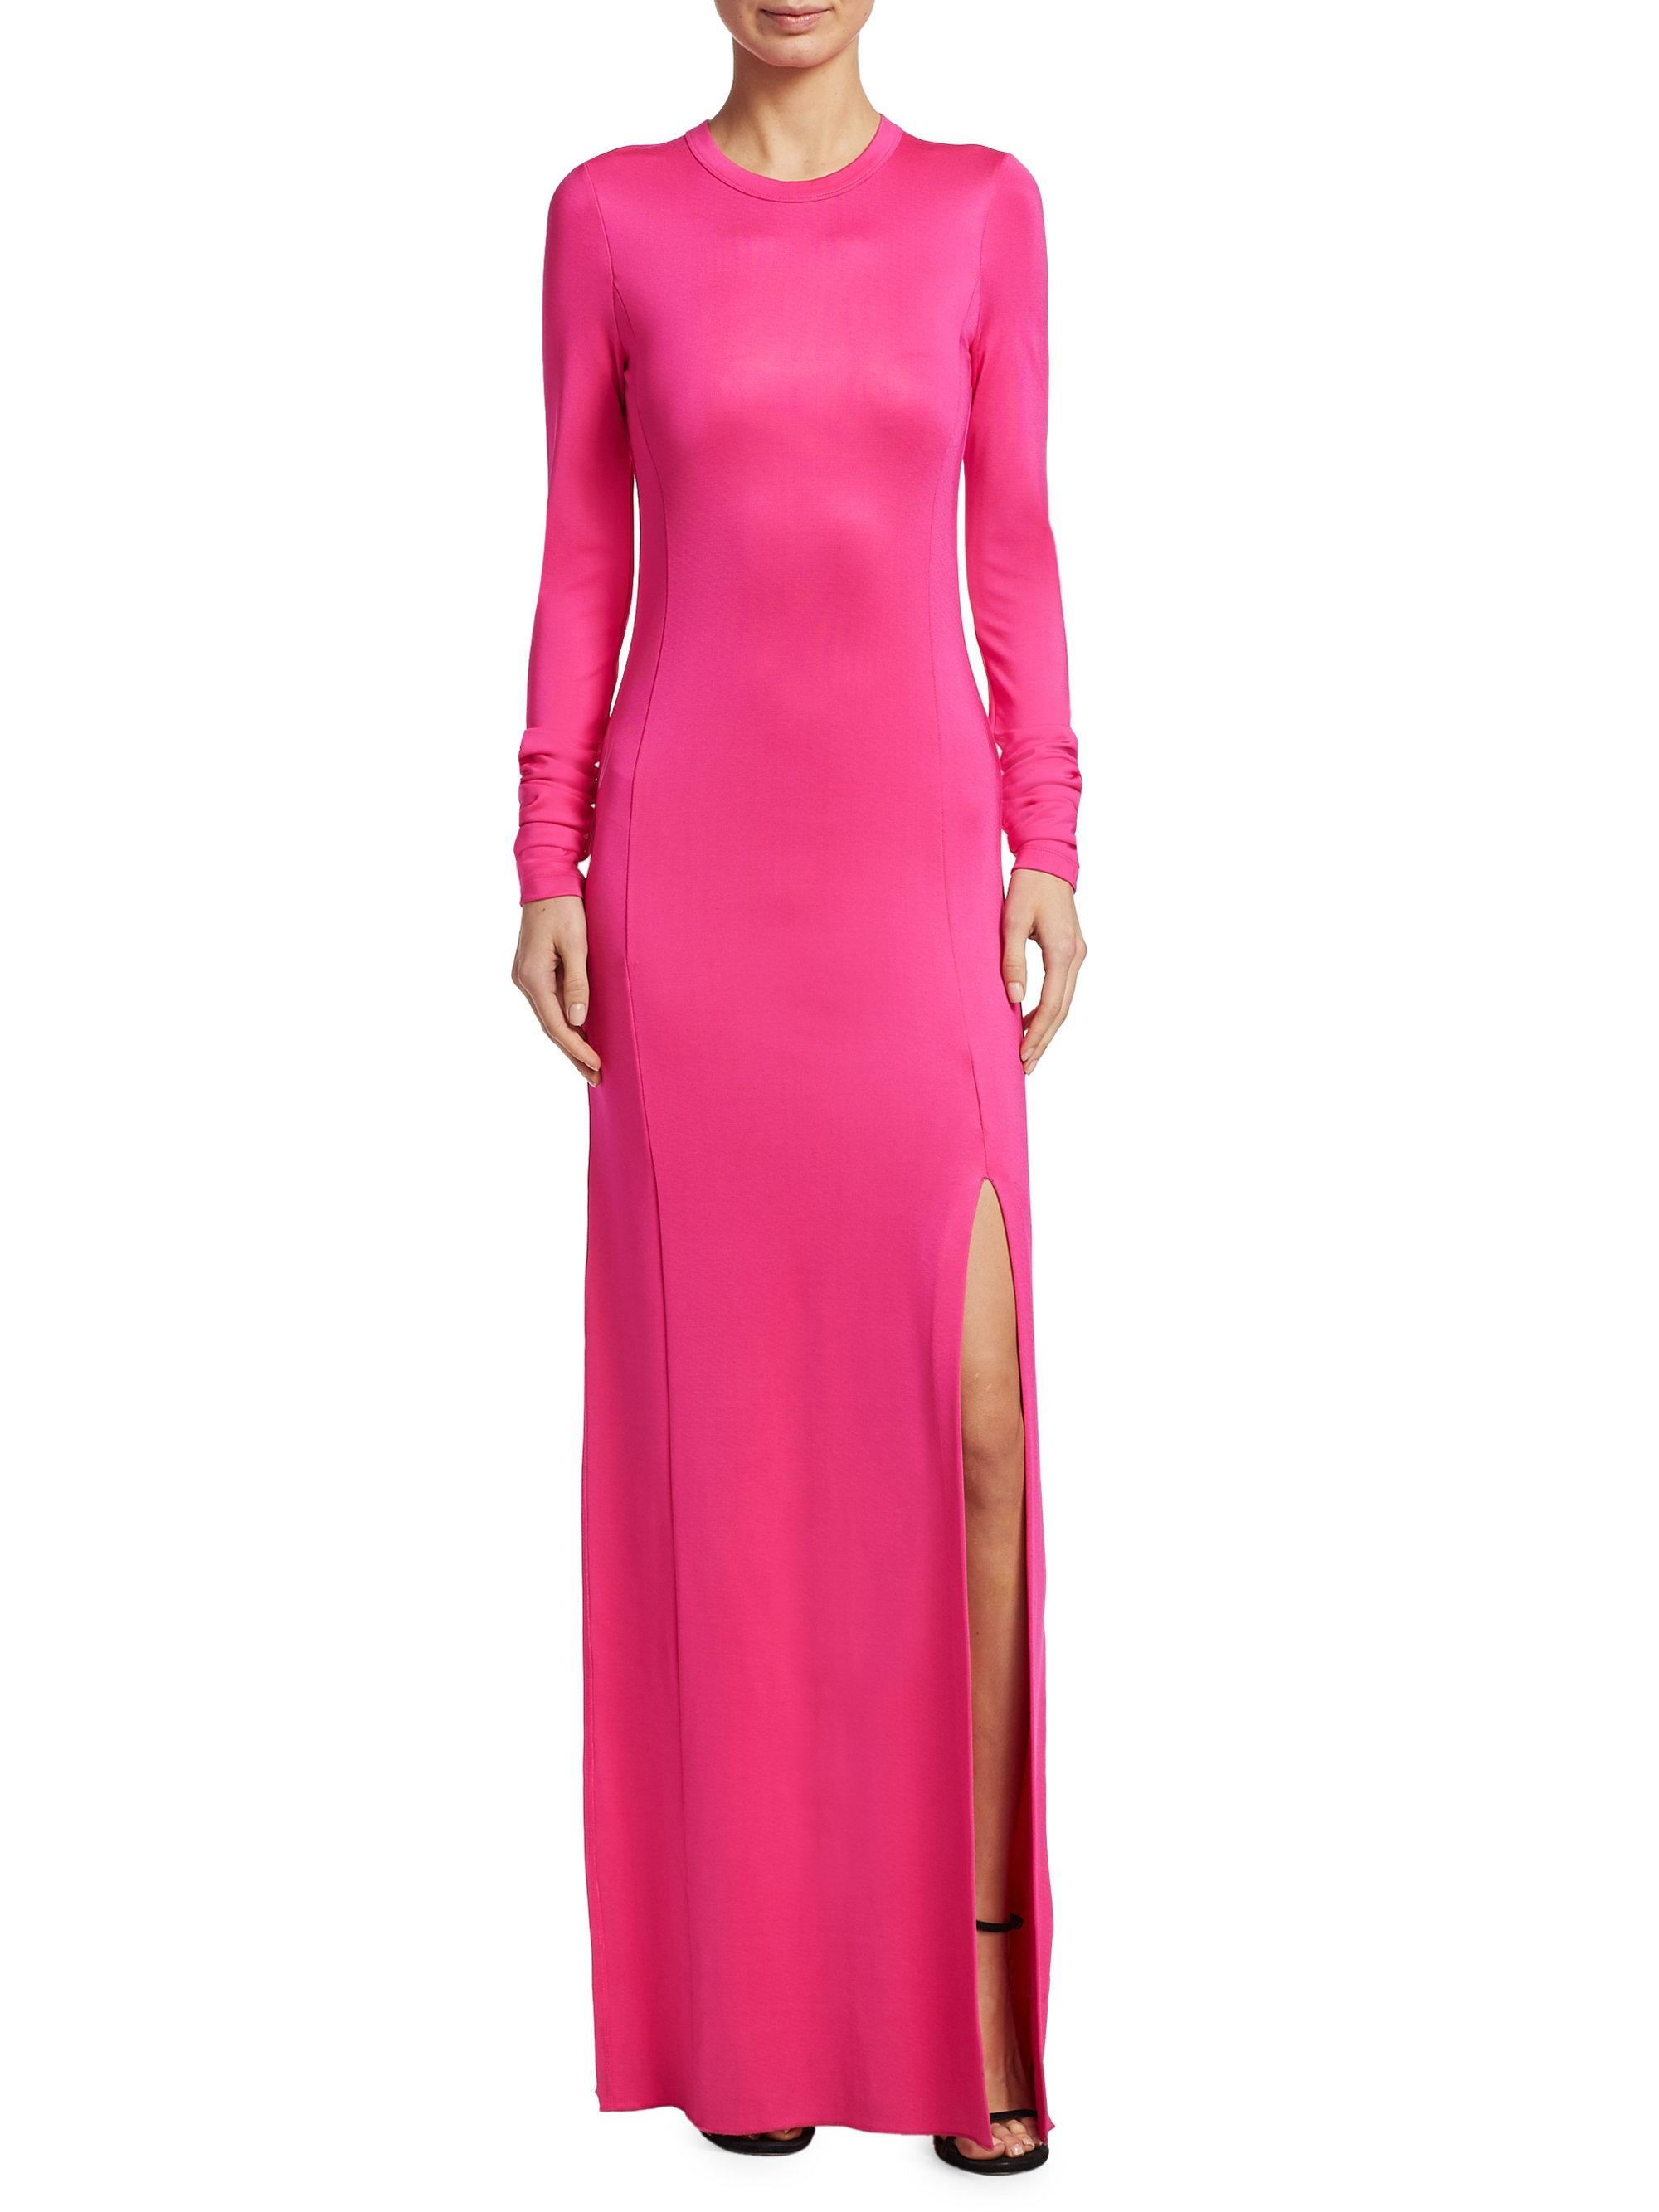 Lyst - Elizabeth And James Fallon Gown In Pink in Pink - Save 56%